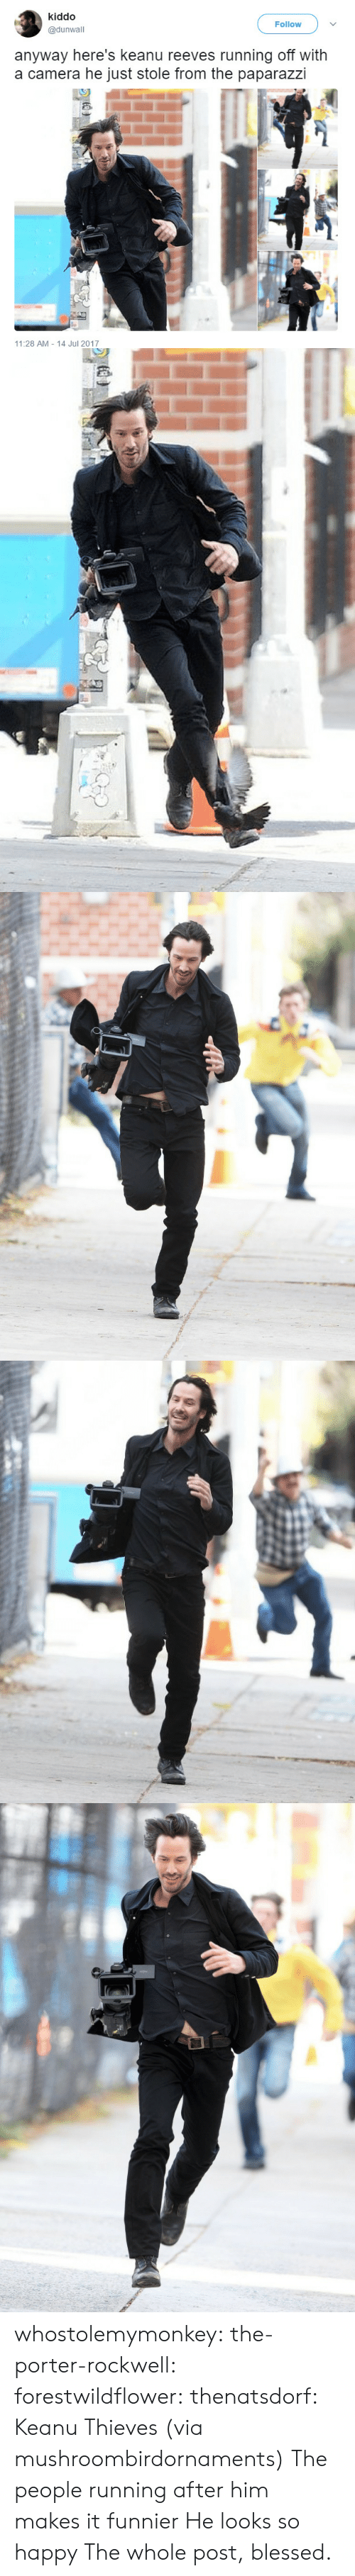 rockwell: kiddo  @dunwall  Follow  anyway here's keanu reeves running off with  a camera he just stole from the paparazzi  11:28 AM 14 Jul 2017 whostolemymonkey:  the-porter-rockwell:   forestwildflower:   thenatsdorf: Keanu Thieves (via mushroombirdornaments)  The people running after him makes it funnier   He looks so happy   The whole post, blessed.